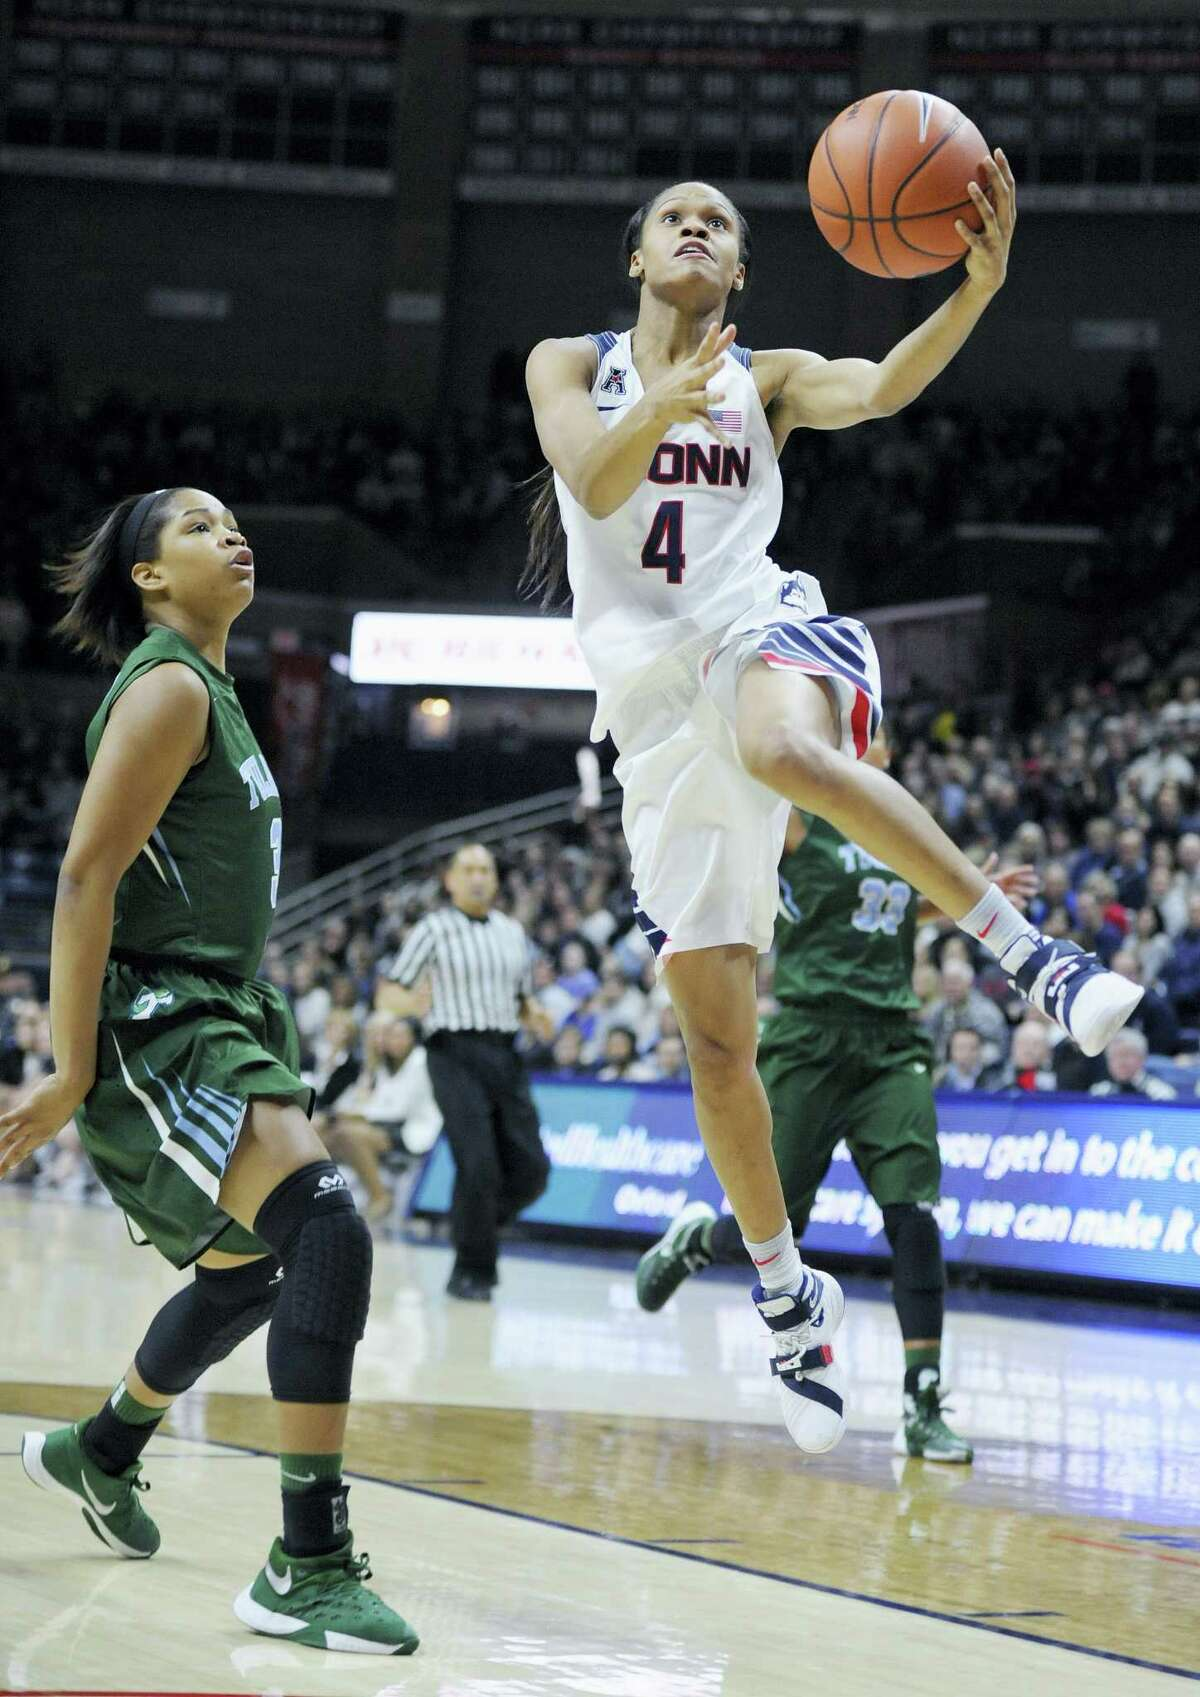 Connecticut's Moriah Jefferson, driving to the basketball against Tulane's Kolby Morgan, was named the AAC's Defensive Player of the Year.